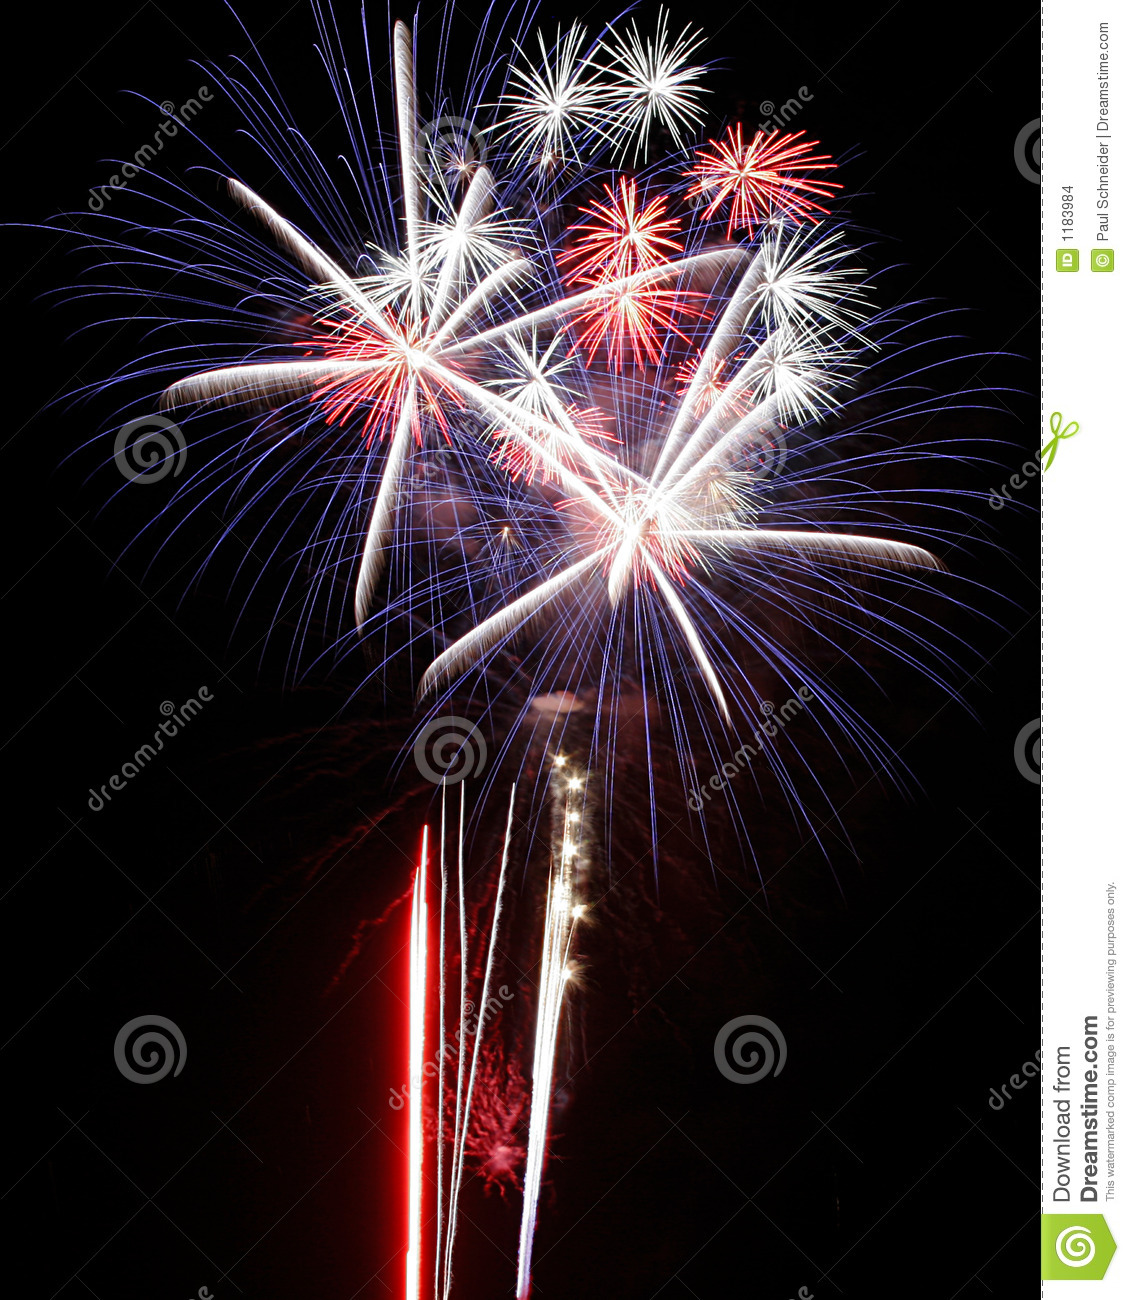 Download Fireworks Lights Explosions Red White Blue Stock Photo - Image of holidays, display: 1183984